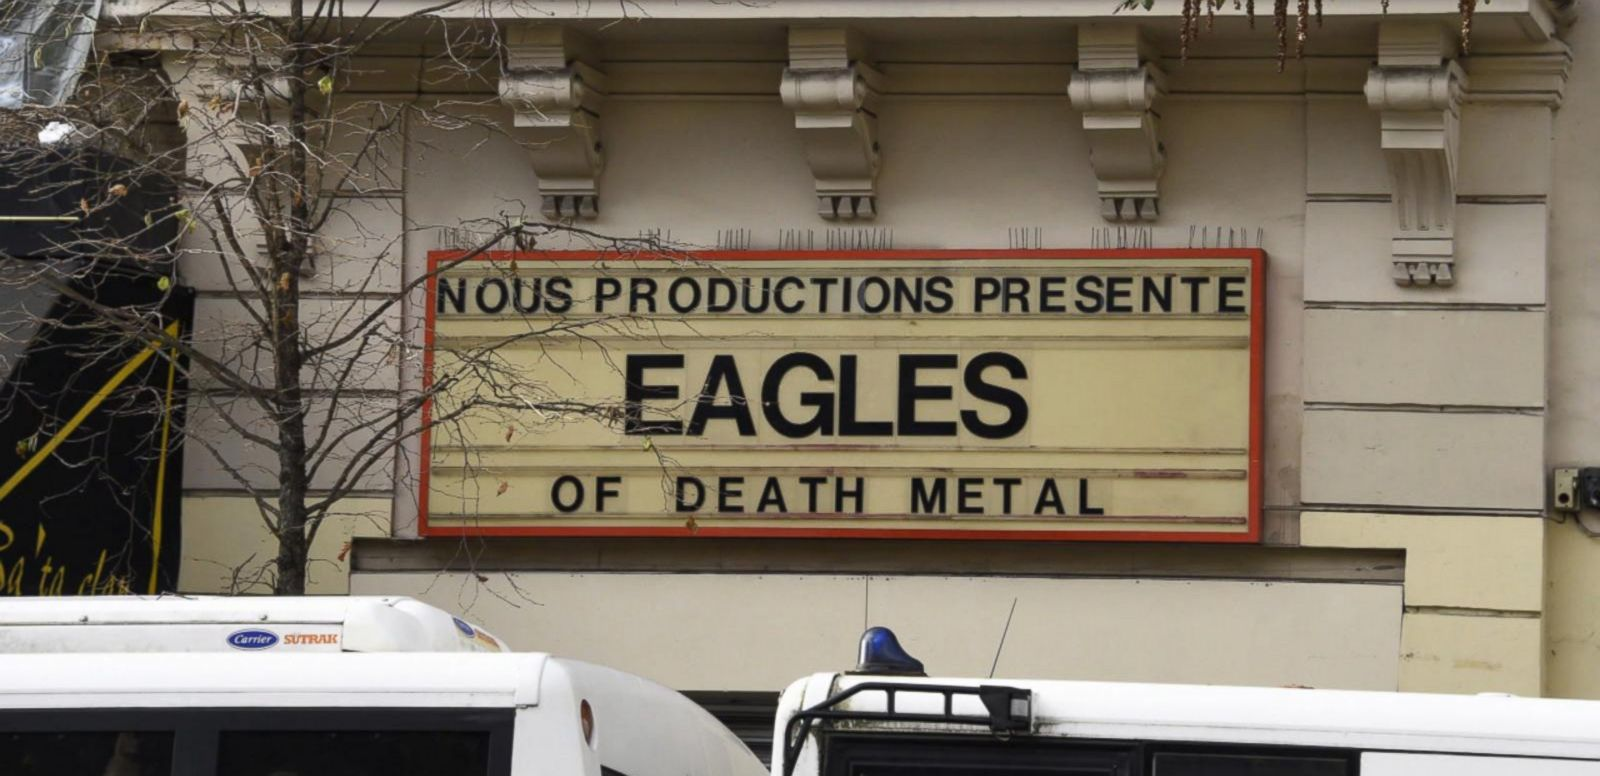 VIDEO: Eagles of Death Metal Finish Tour Stopped by Terrorists